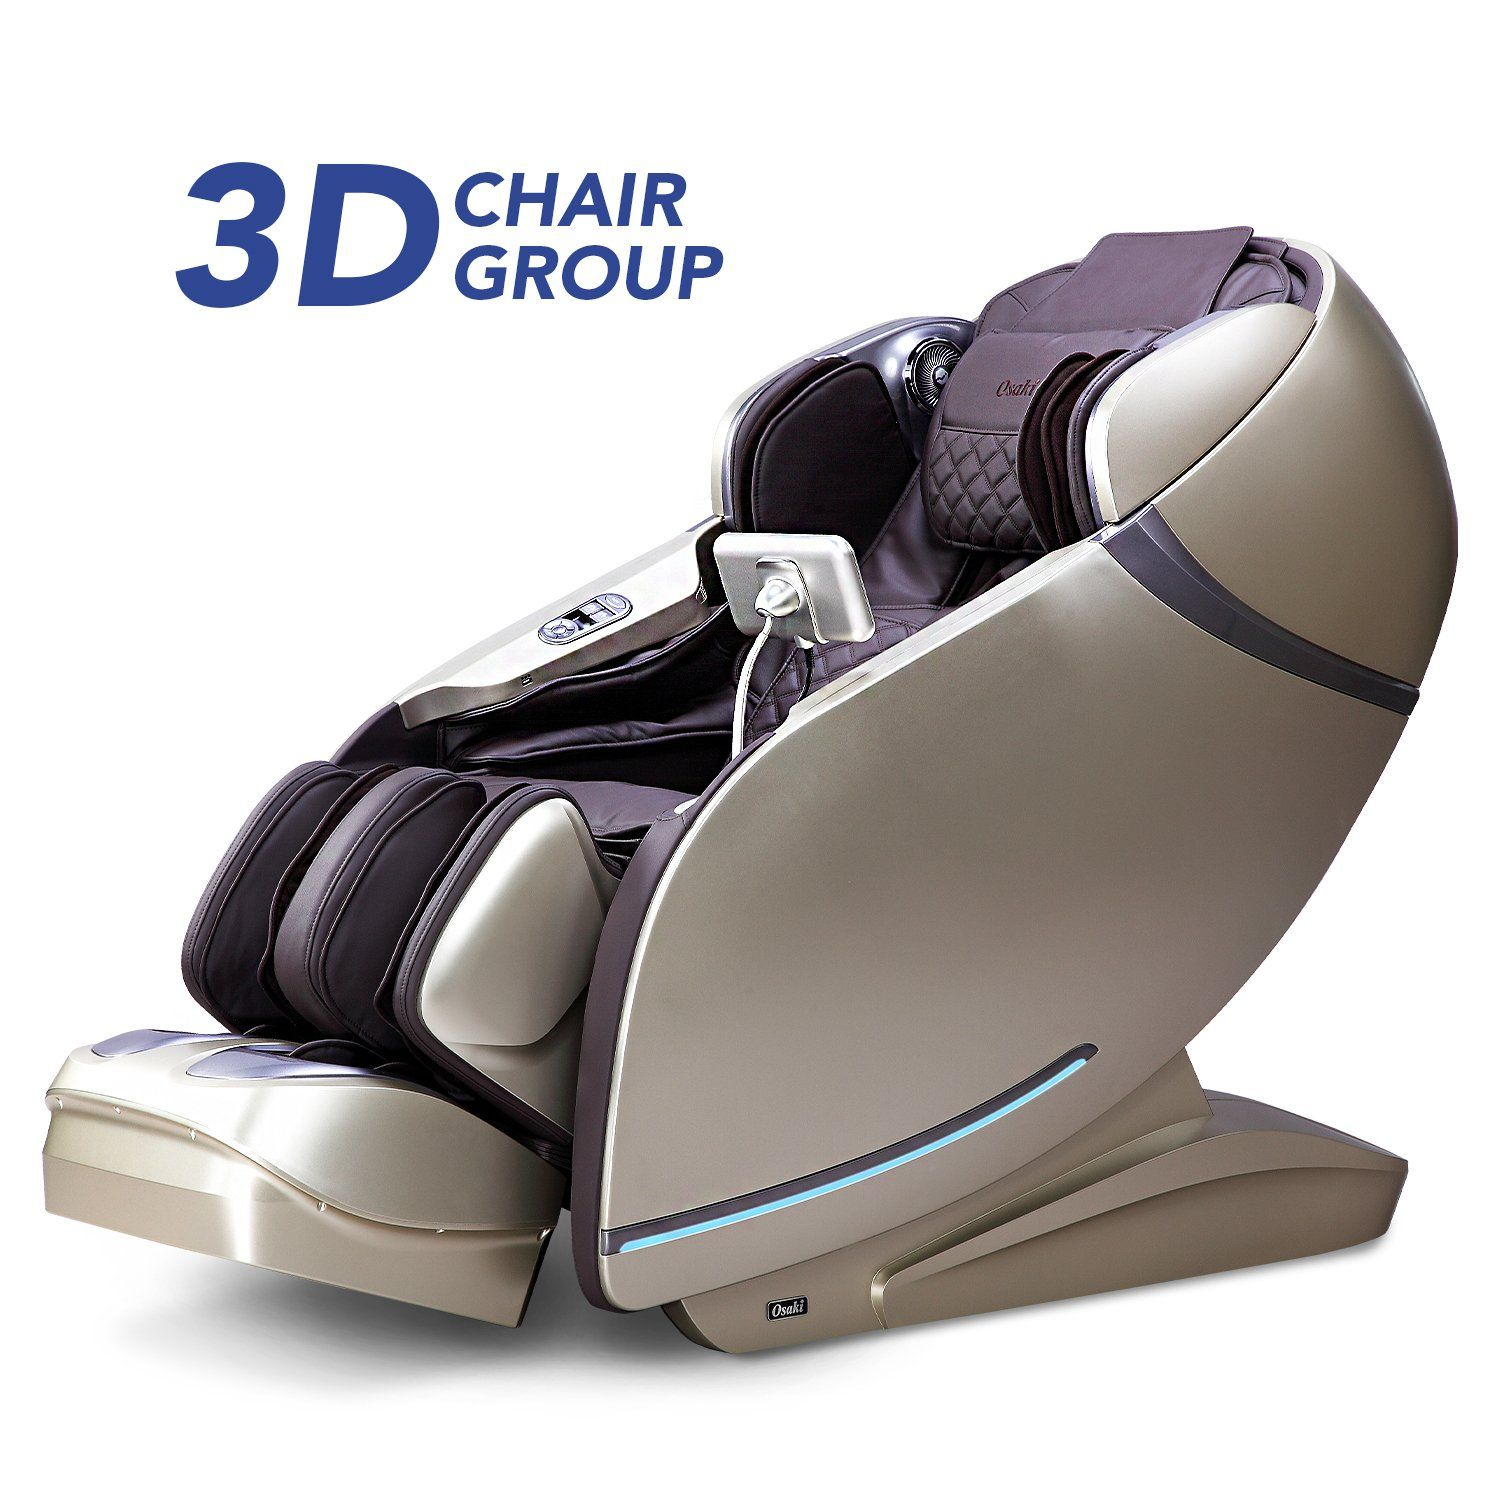 Titan Chair in 2020 Massage chair, Feet roller, Calf roller